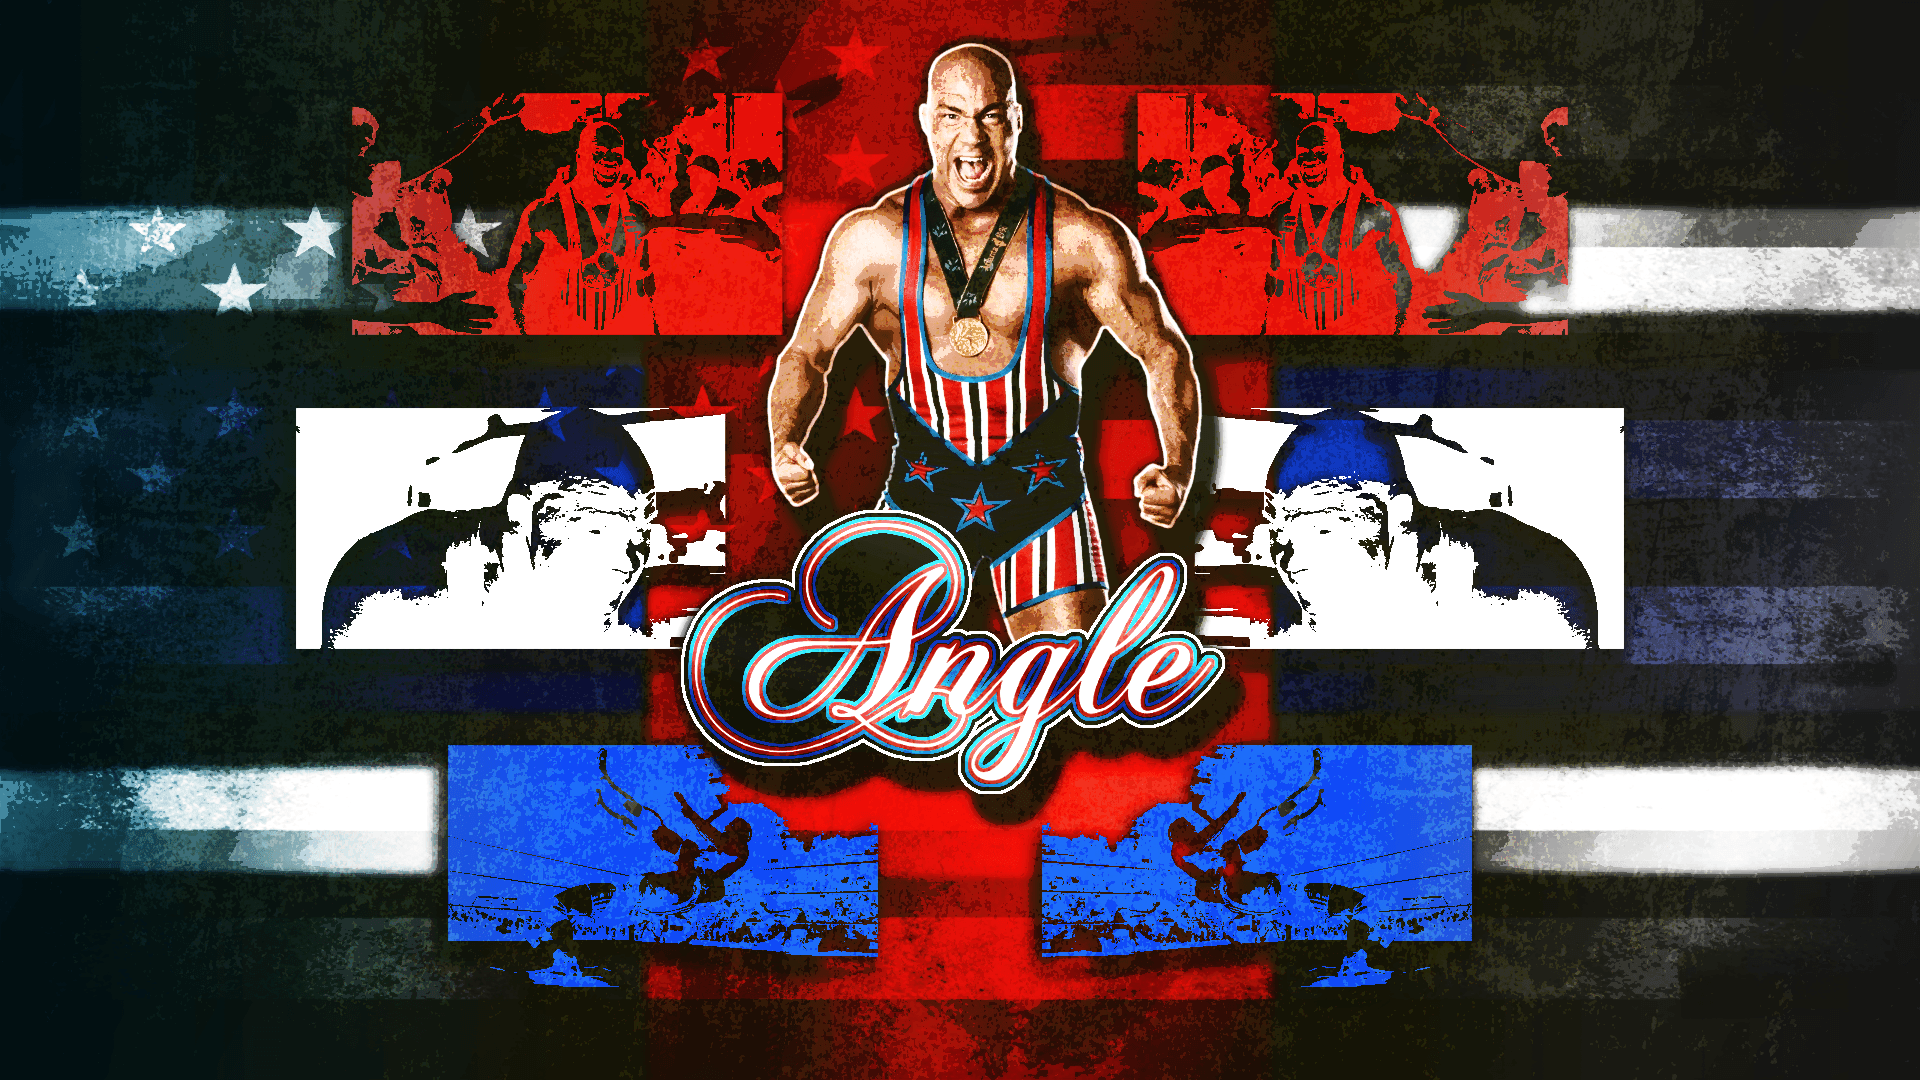 Kurt Angle Wallpaper (1080p) by DarkVoidPictures on DeviantArt